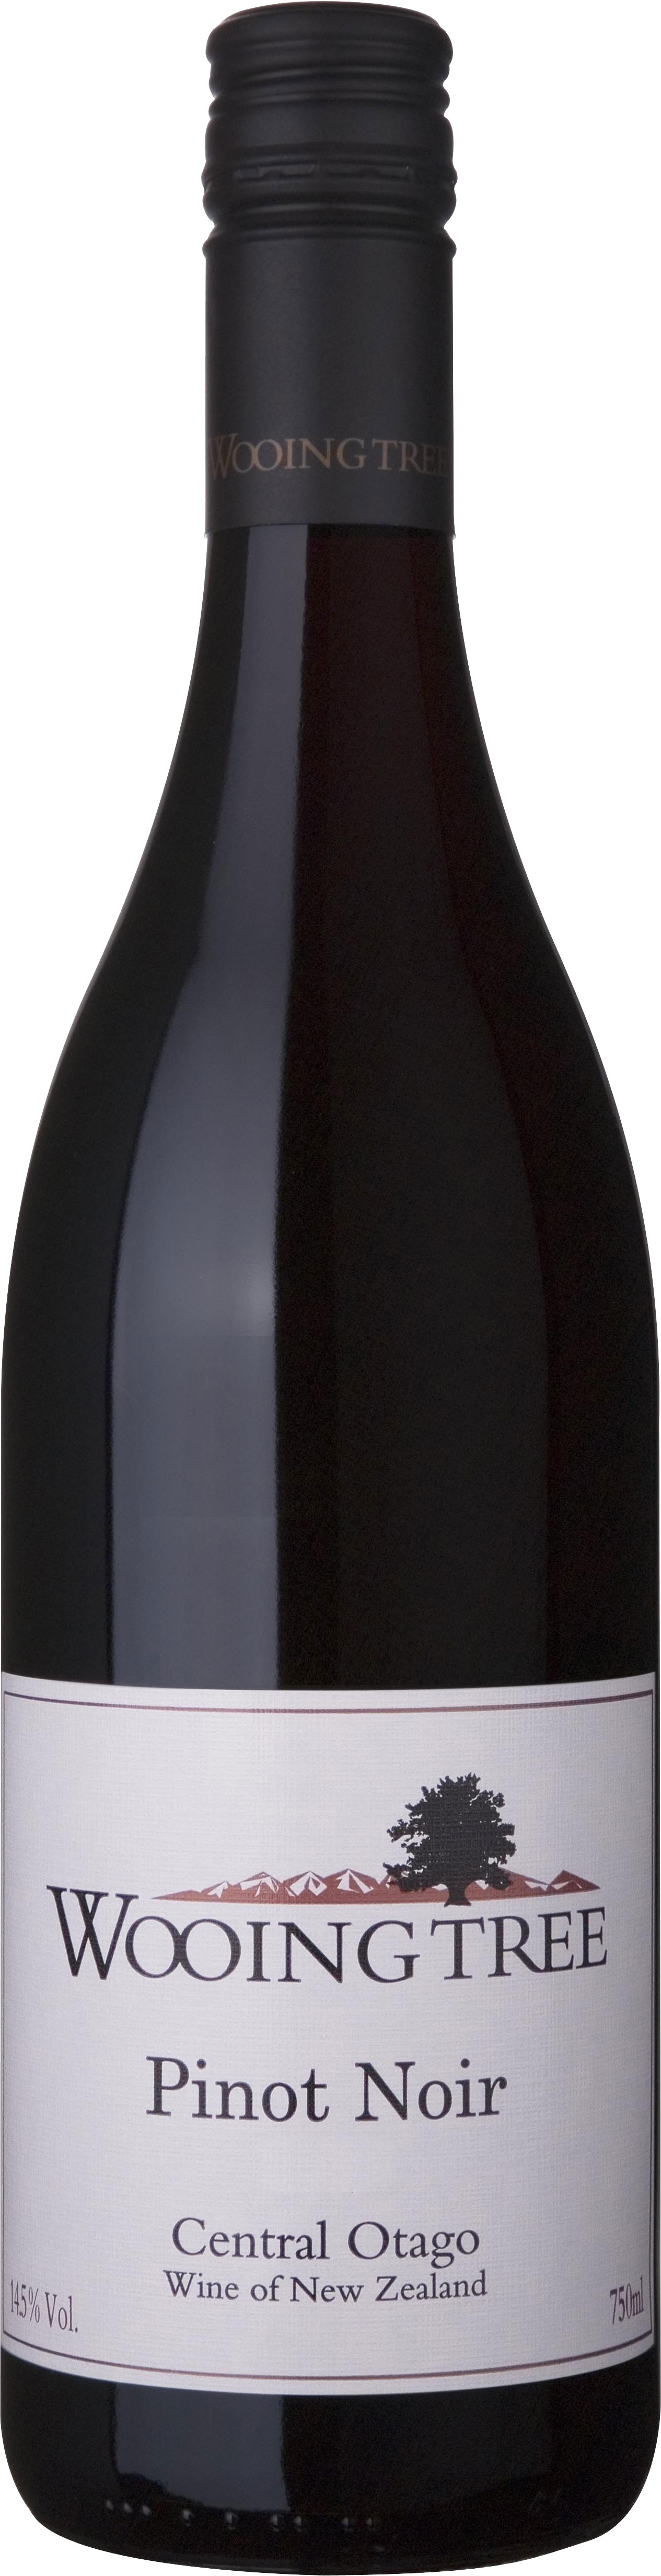 The Wooing Tree - Pinot Noir 2017 75cl Bottle